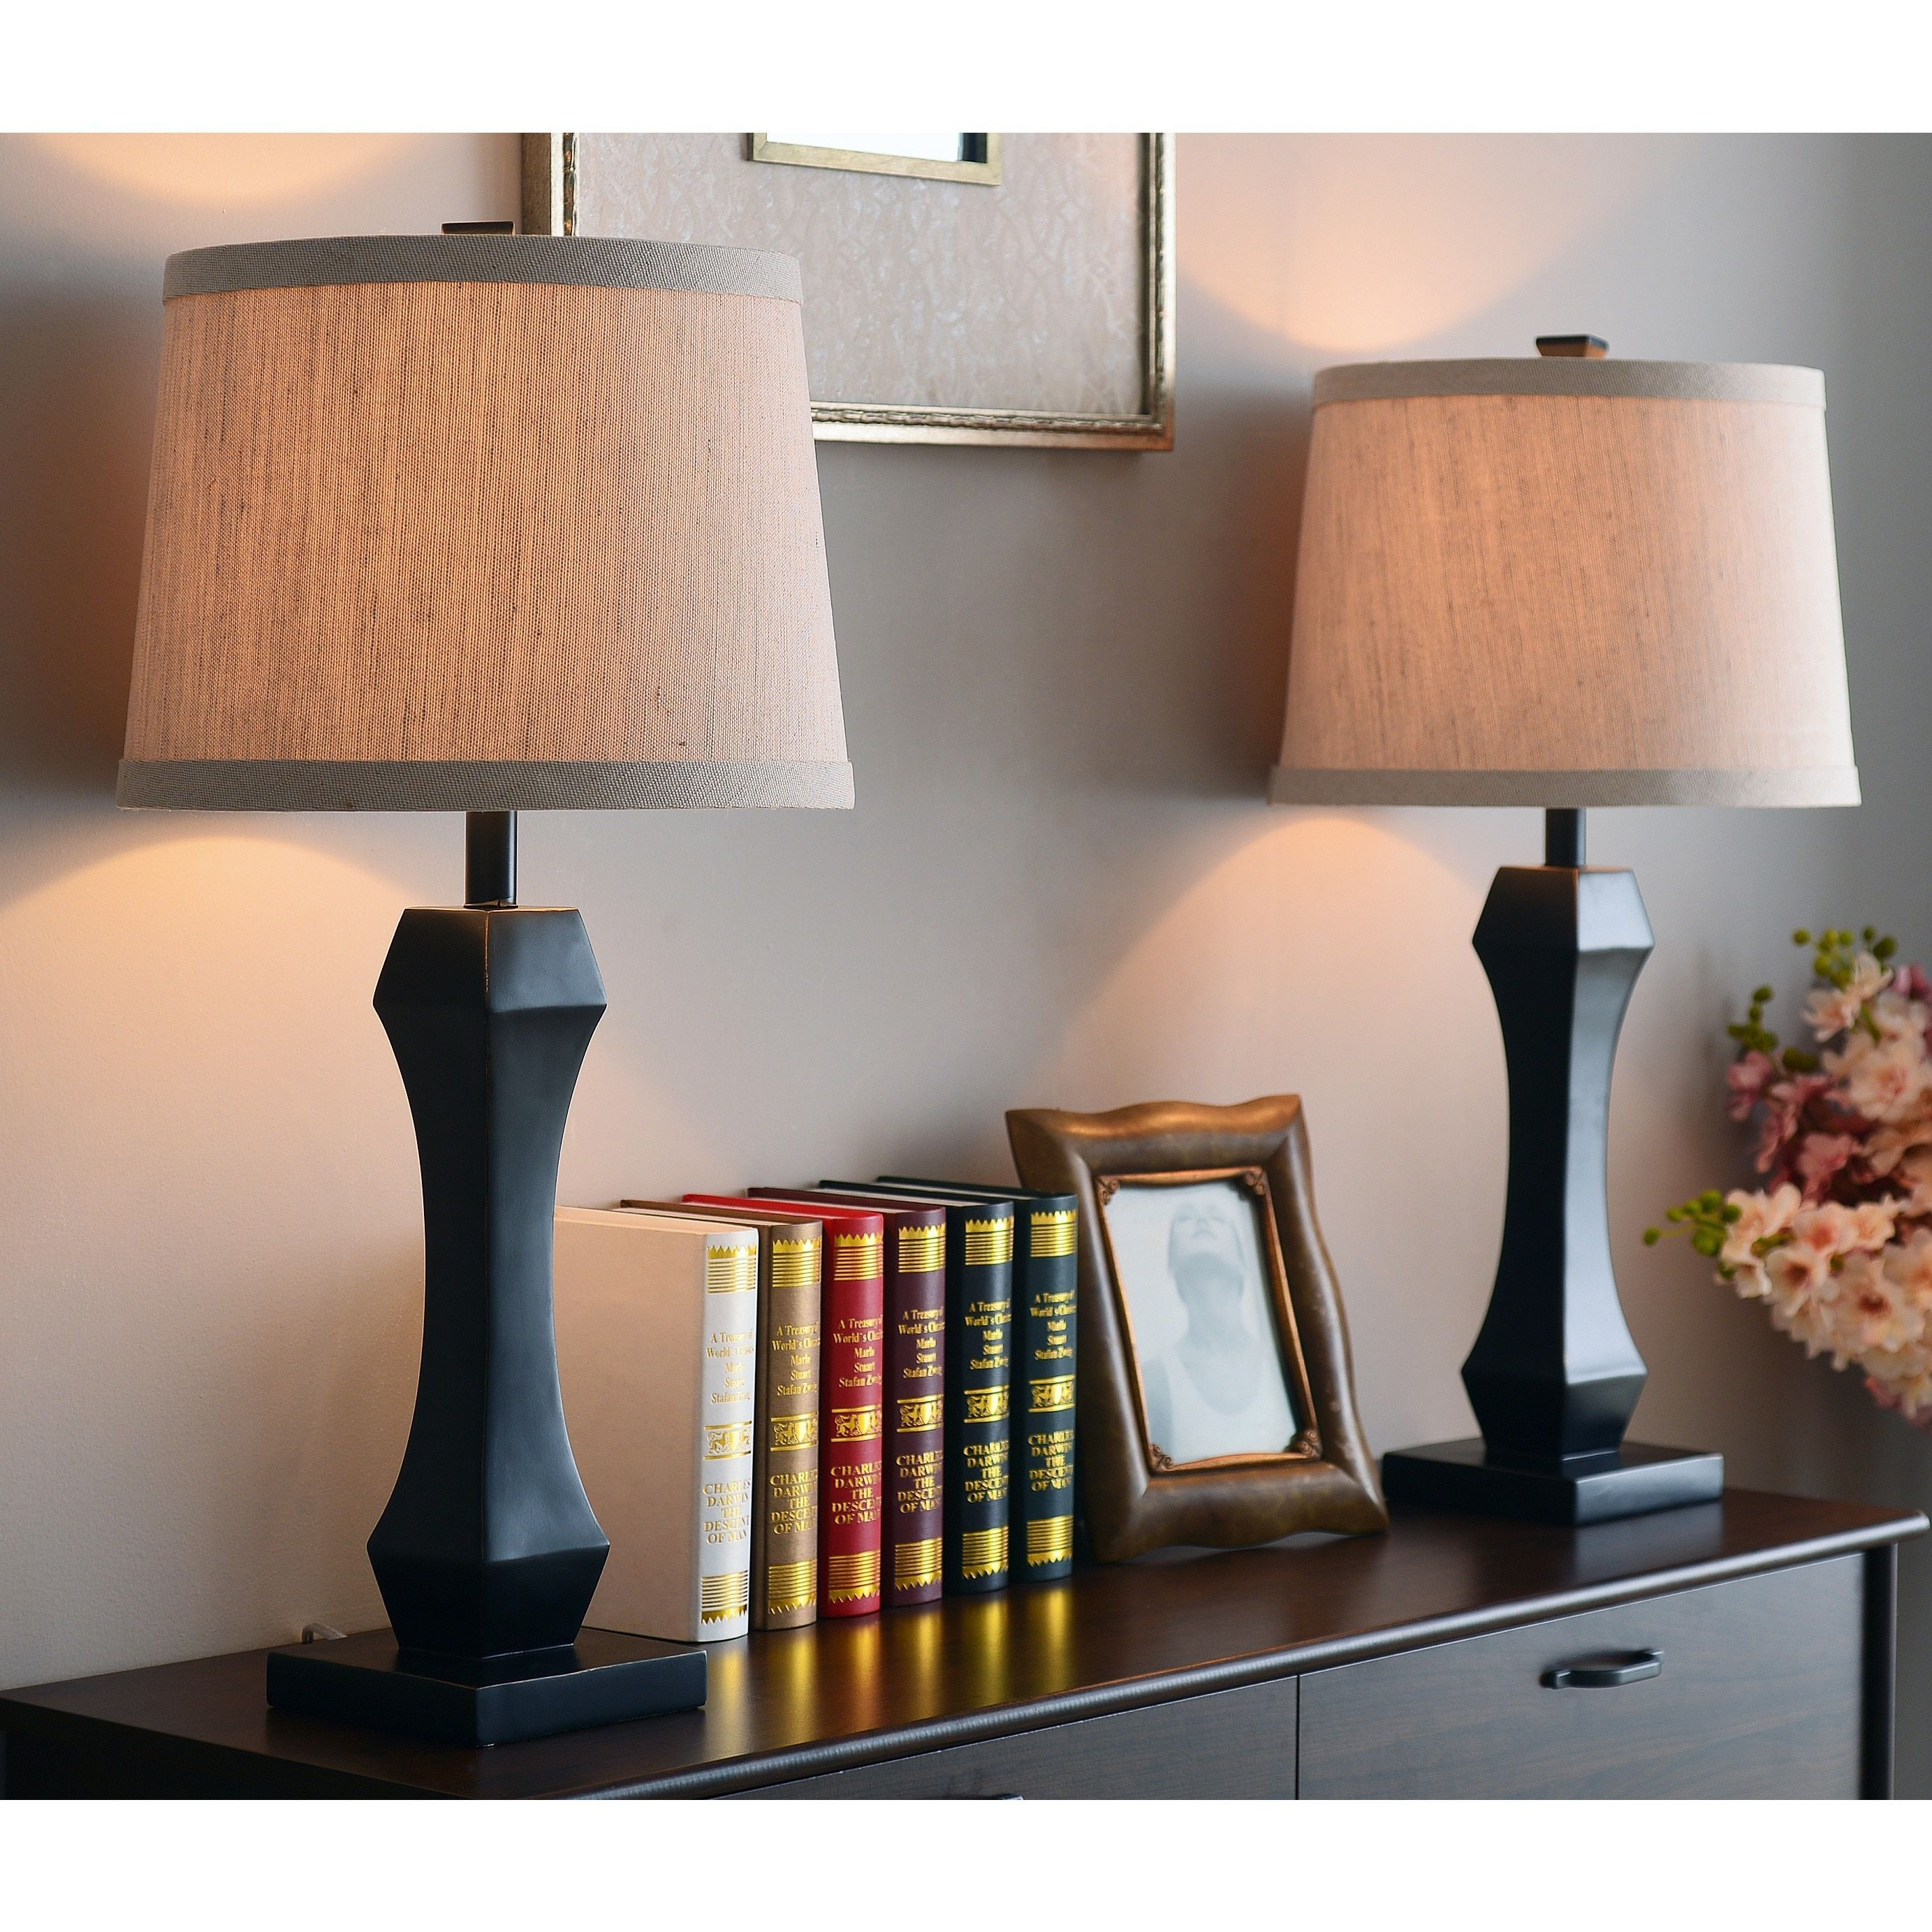 Lamp Table Lamps For Living Room Bedroom Tall Rectangular Cream Shade Oriental Asian From The Artistic Style Of T Metal Table Lamps Table Lamp Table Lamp Sets